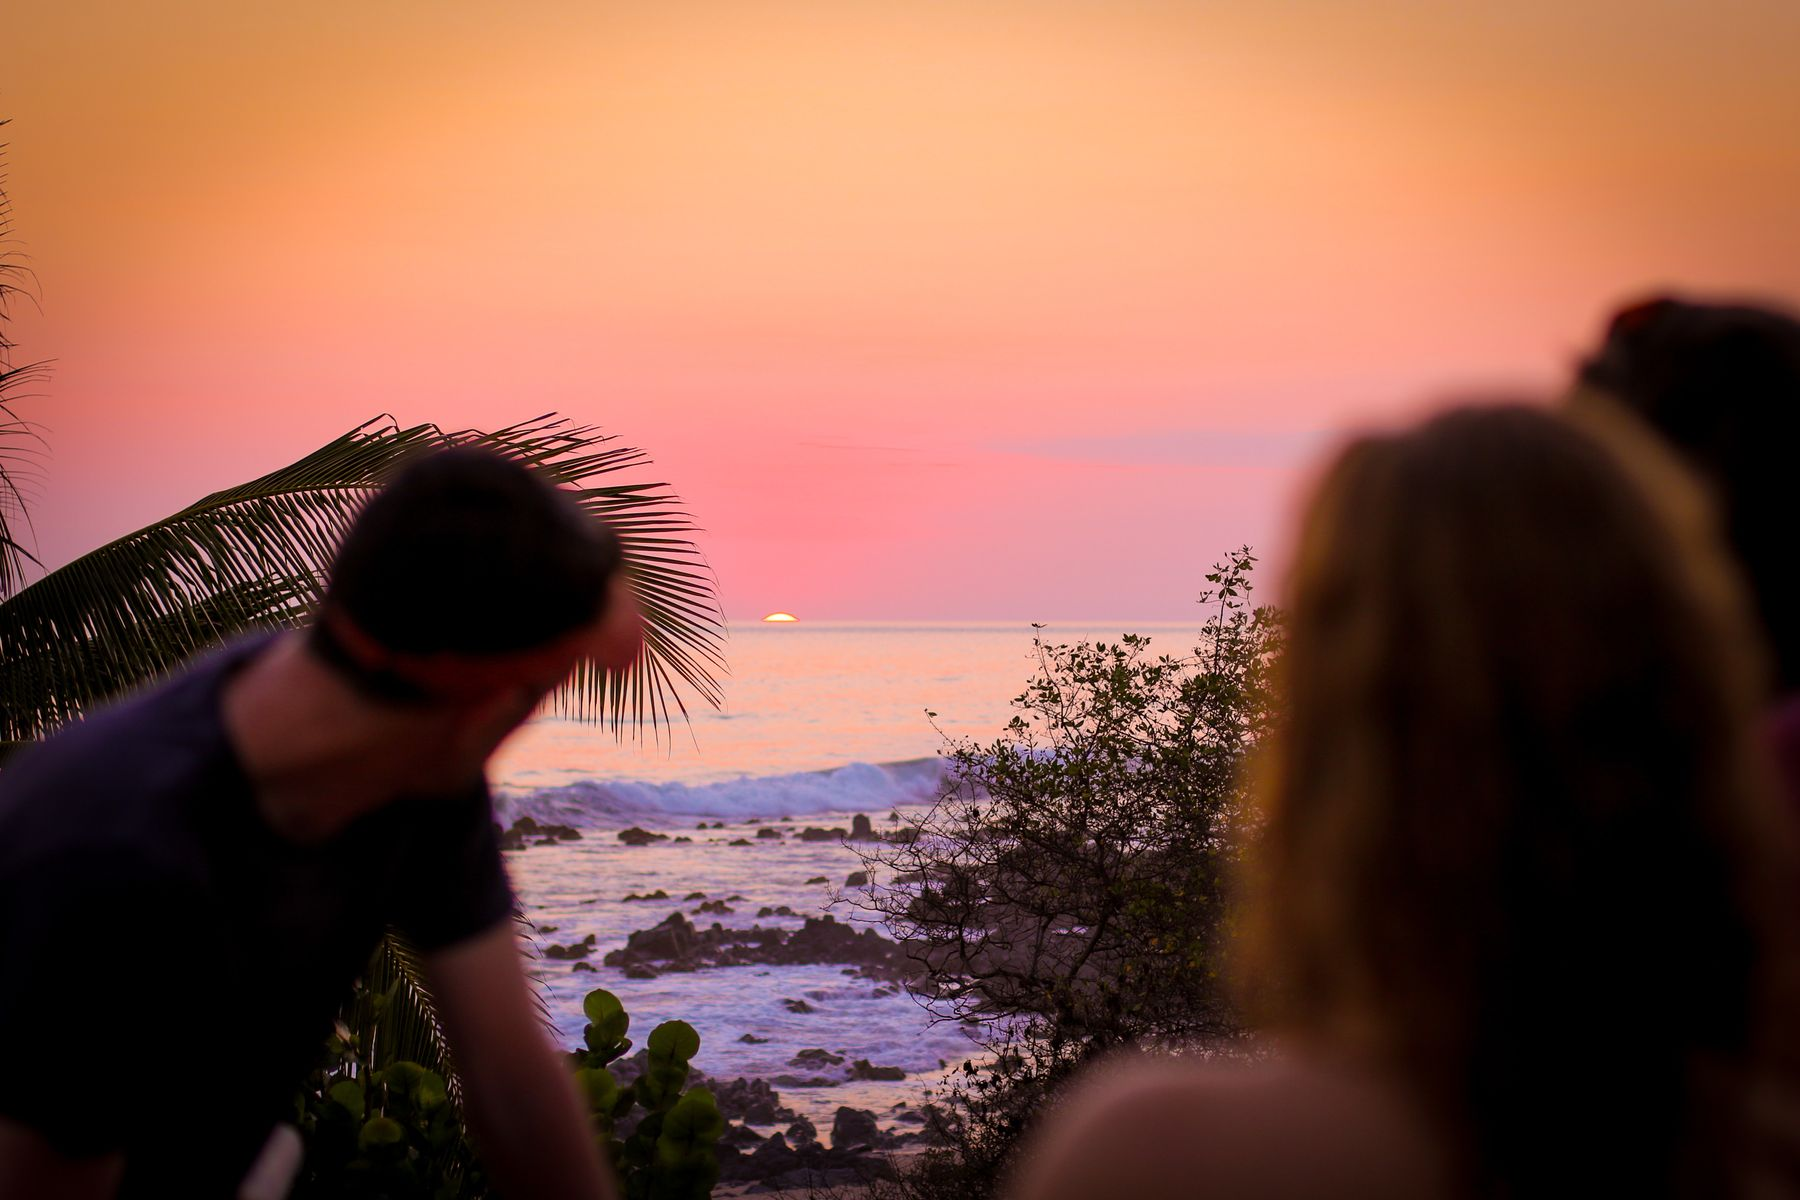 travellers watching the sunset in Troncones, Mexico. Travel and work remotely in Mexico.